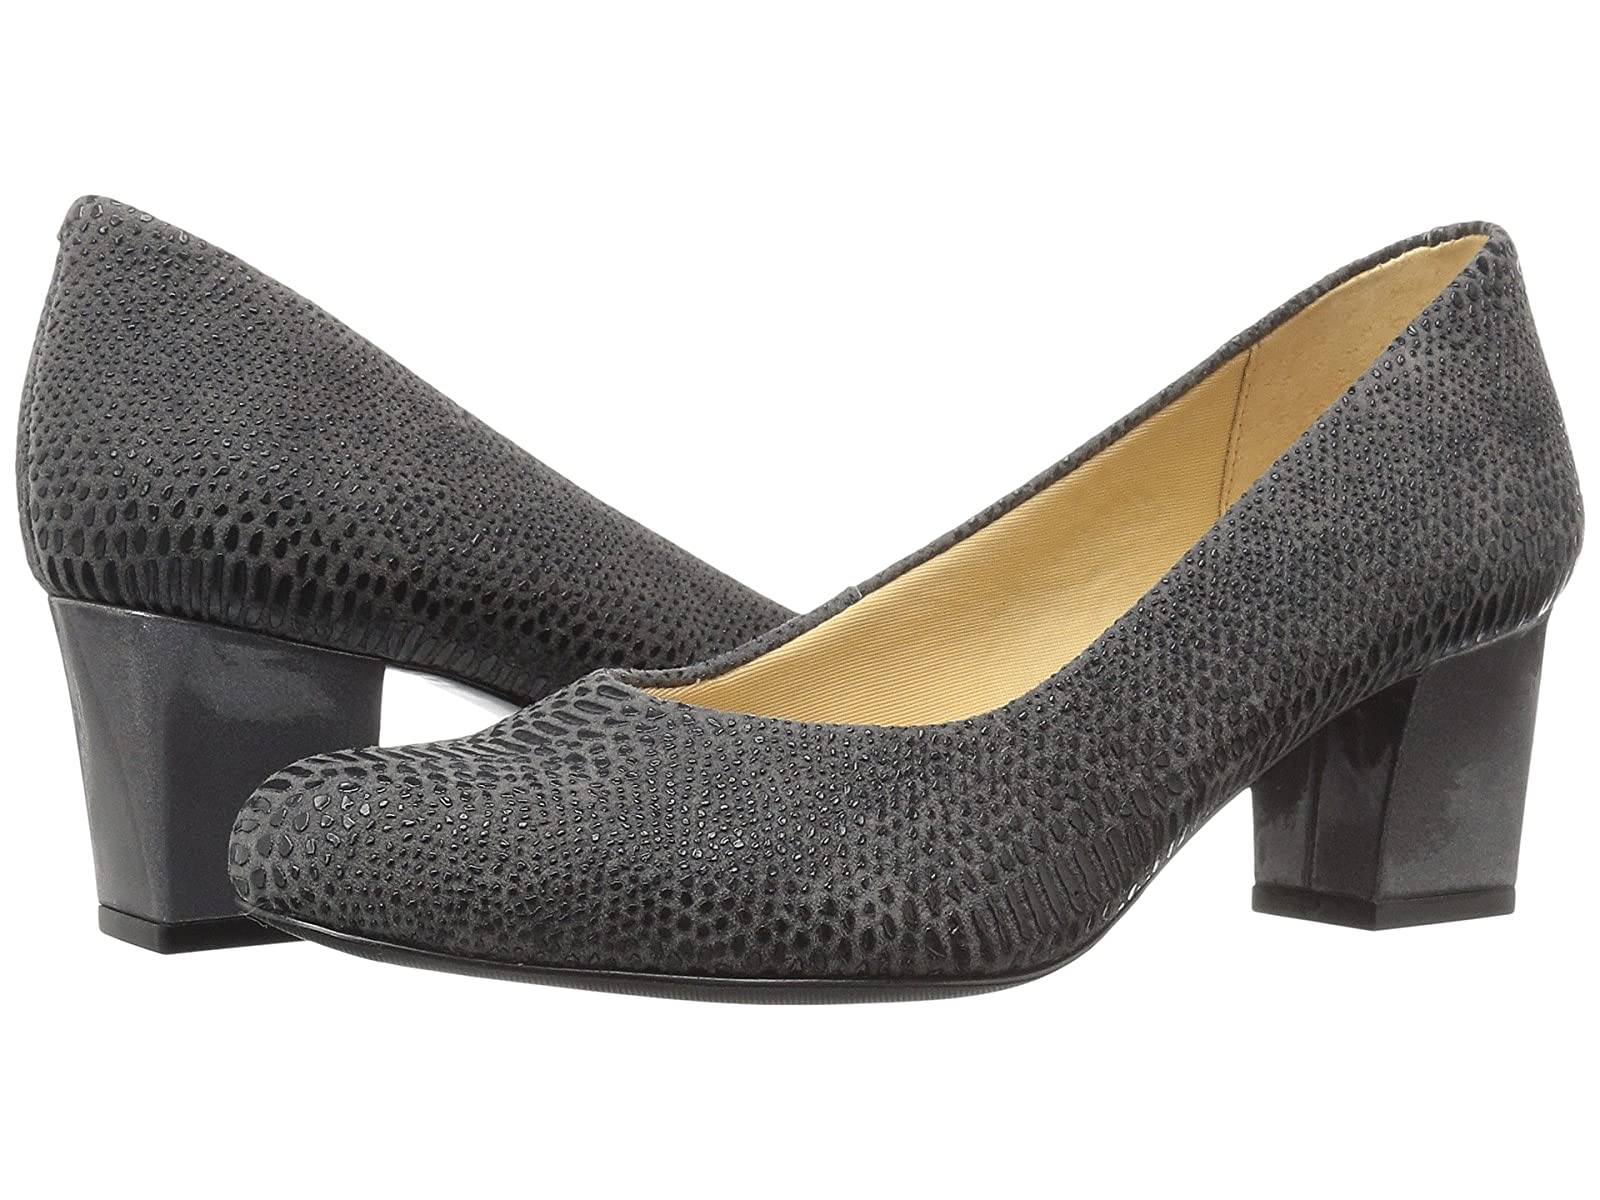 Trotters CandelaCheap and distinctive eye-catching shoes